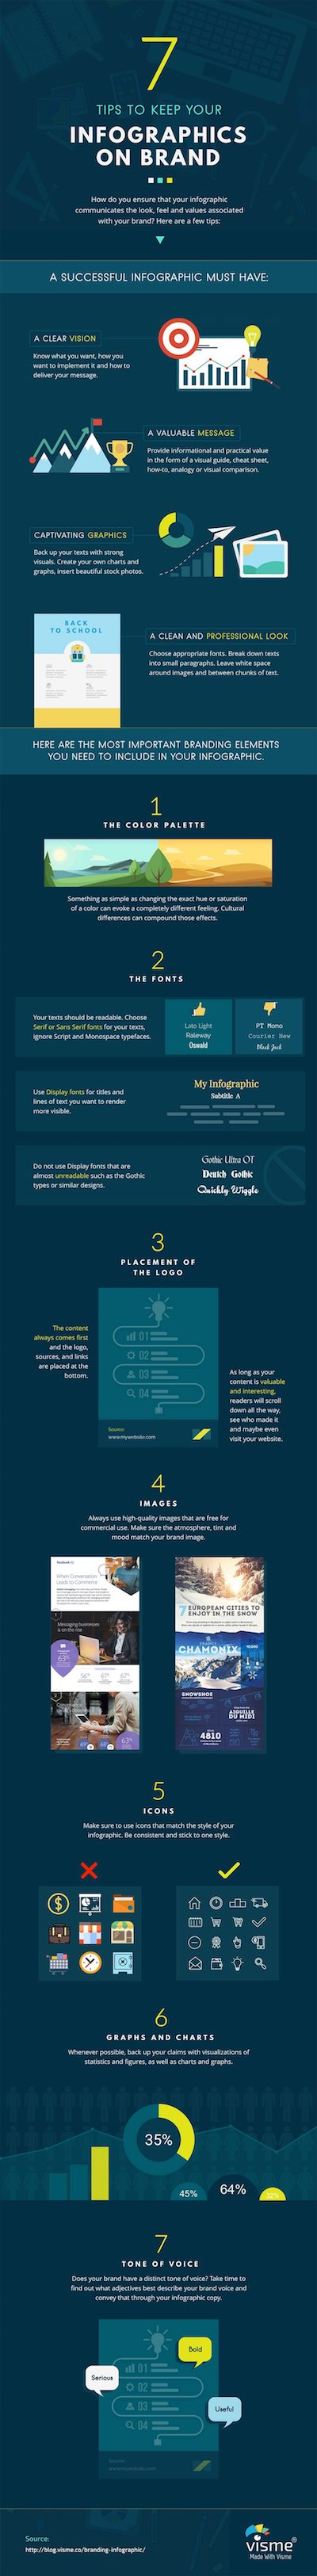 infographic_tips